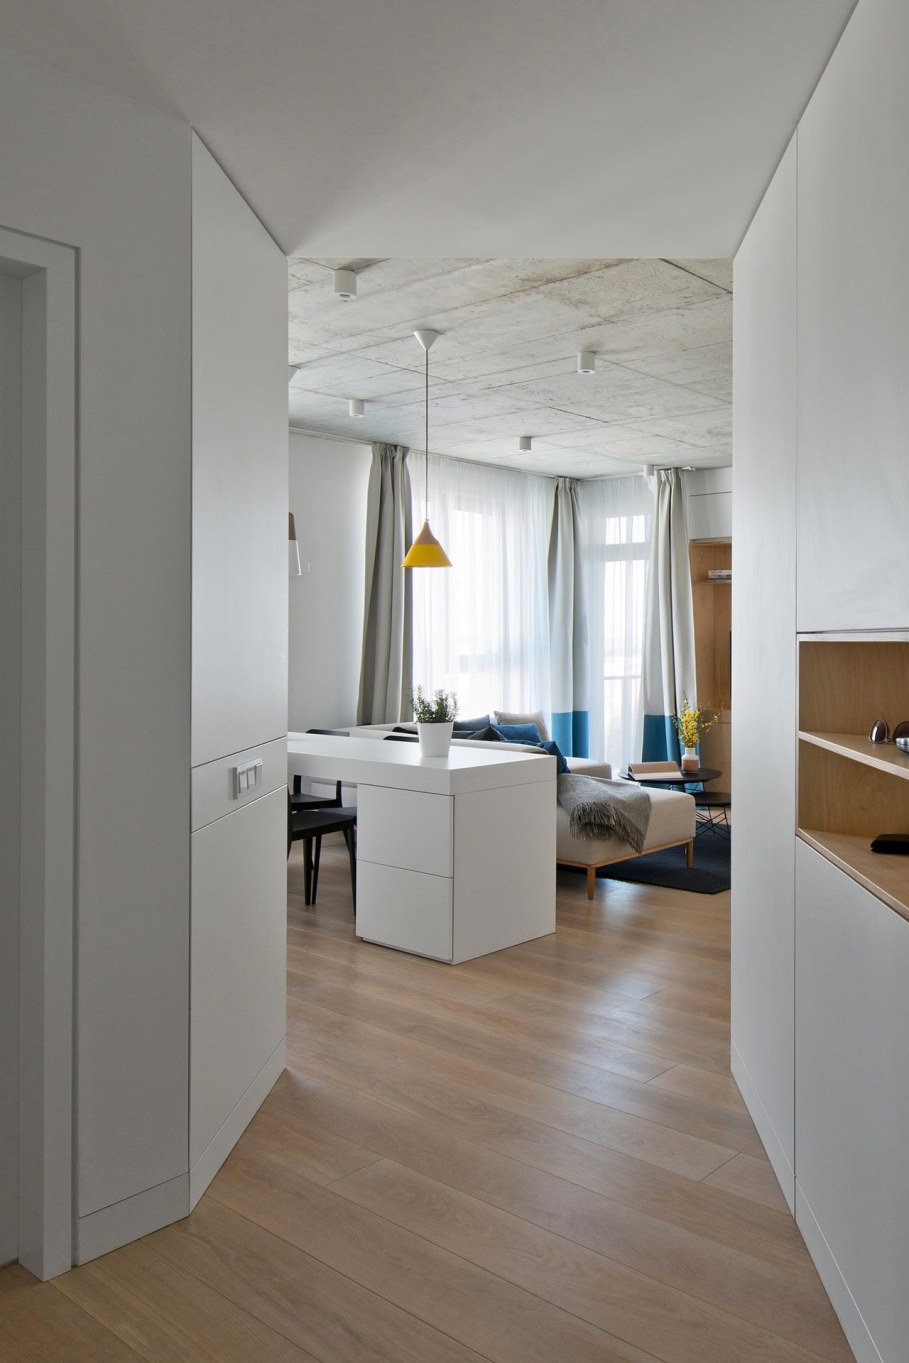 Apartment In Vilnius from Normundas Vilkas - oak floor and unpolished concrete